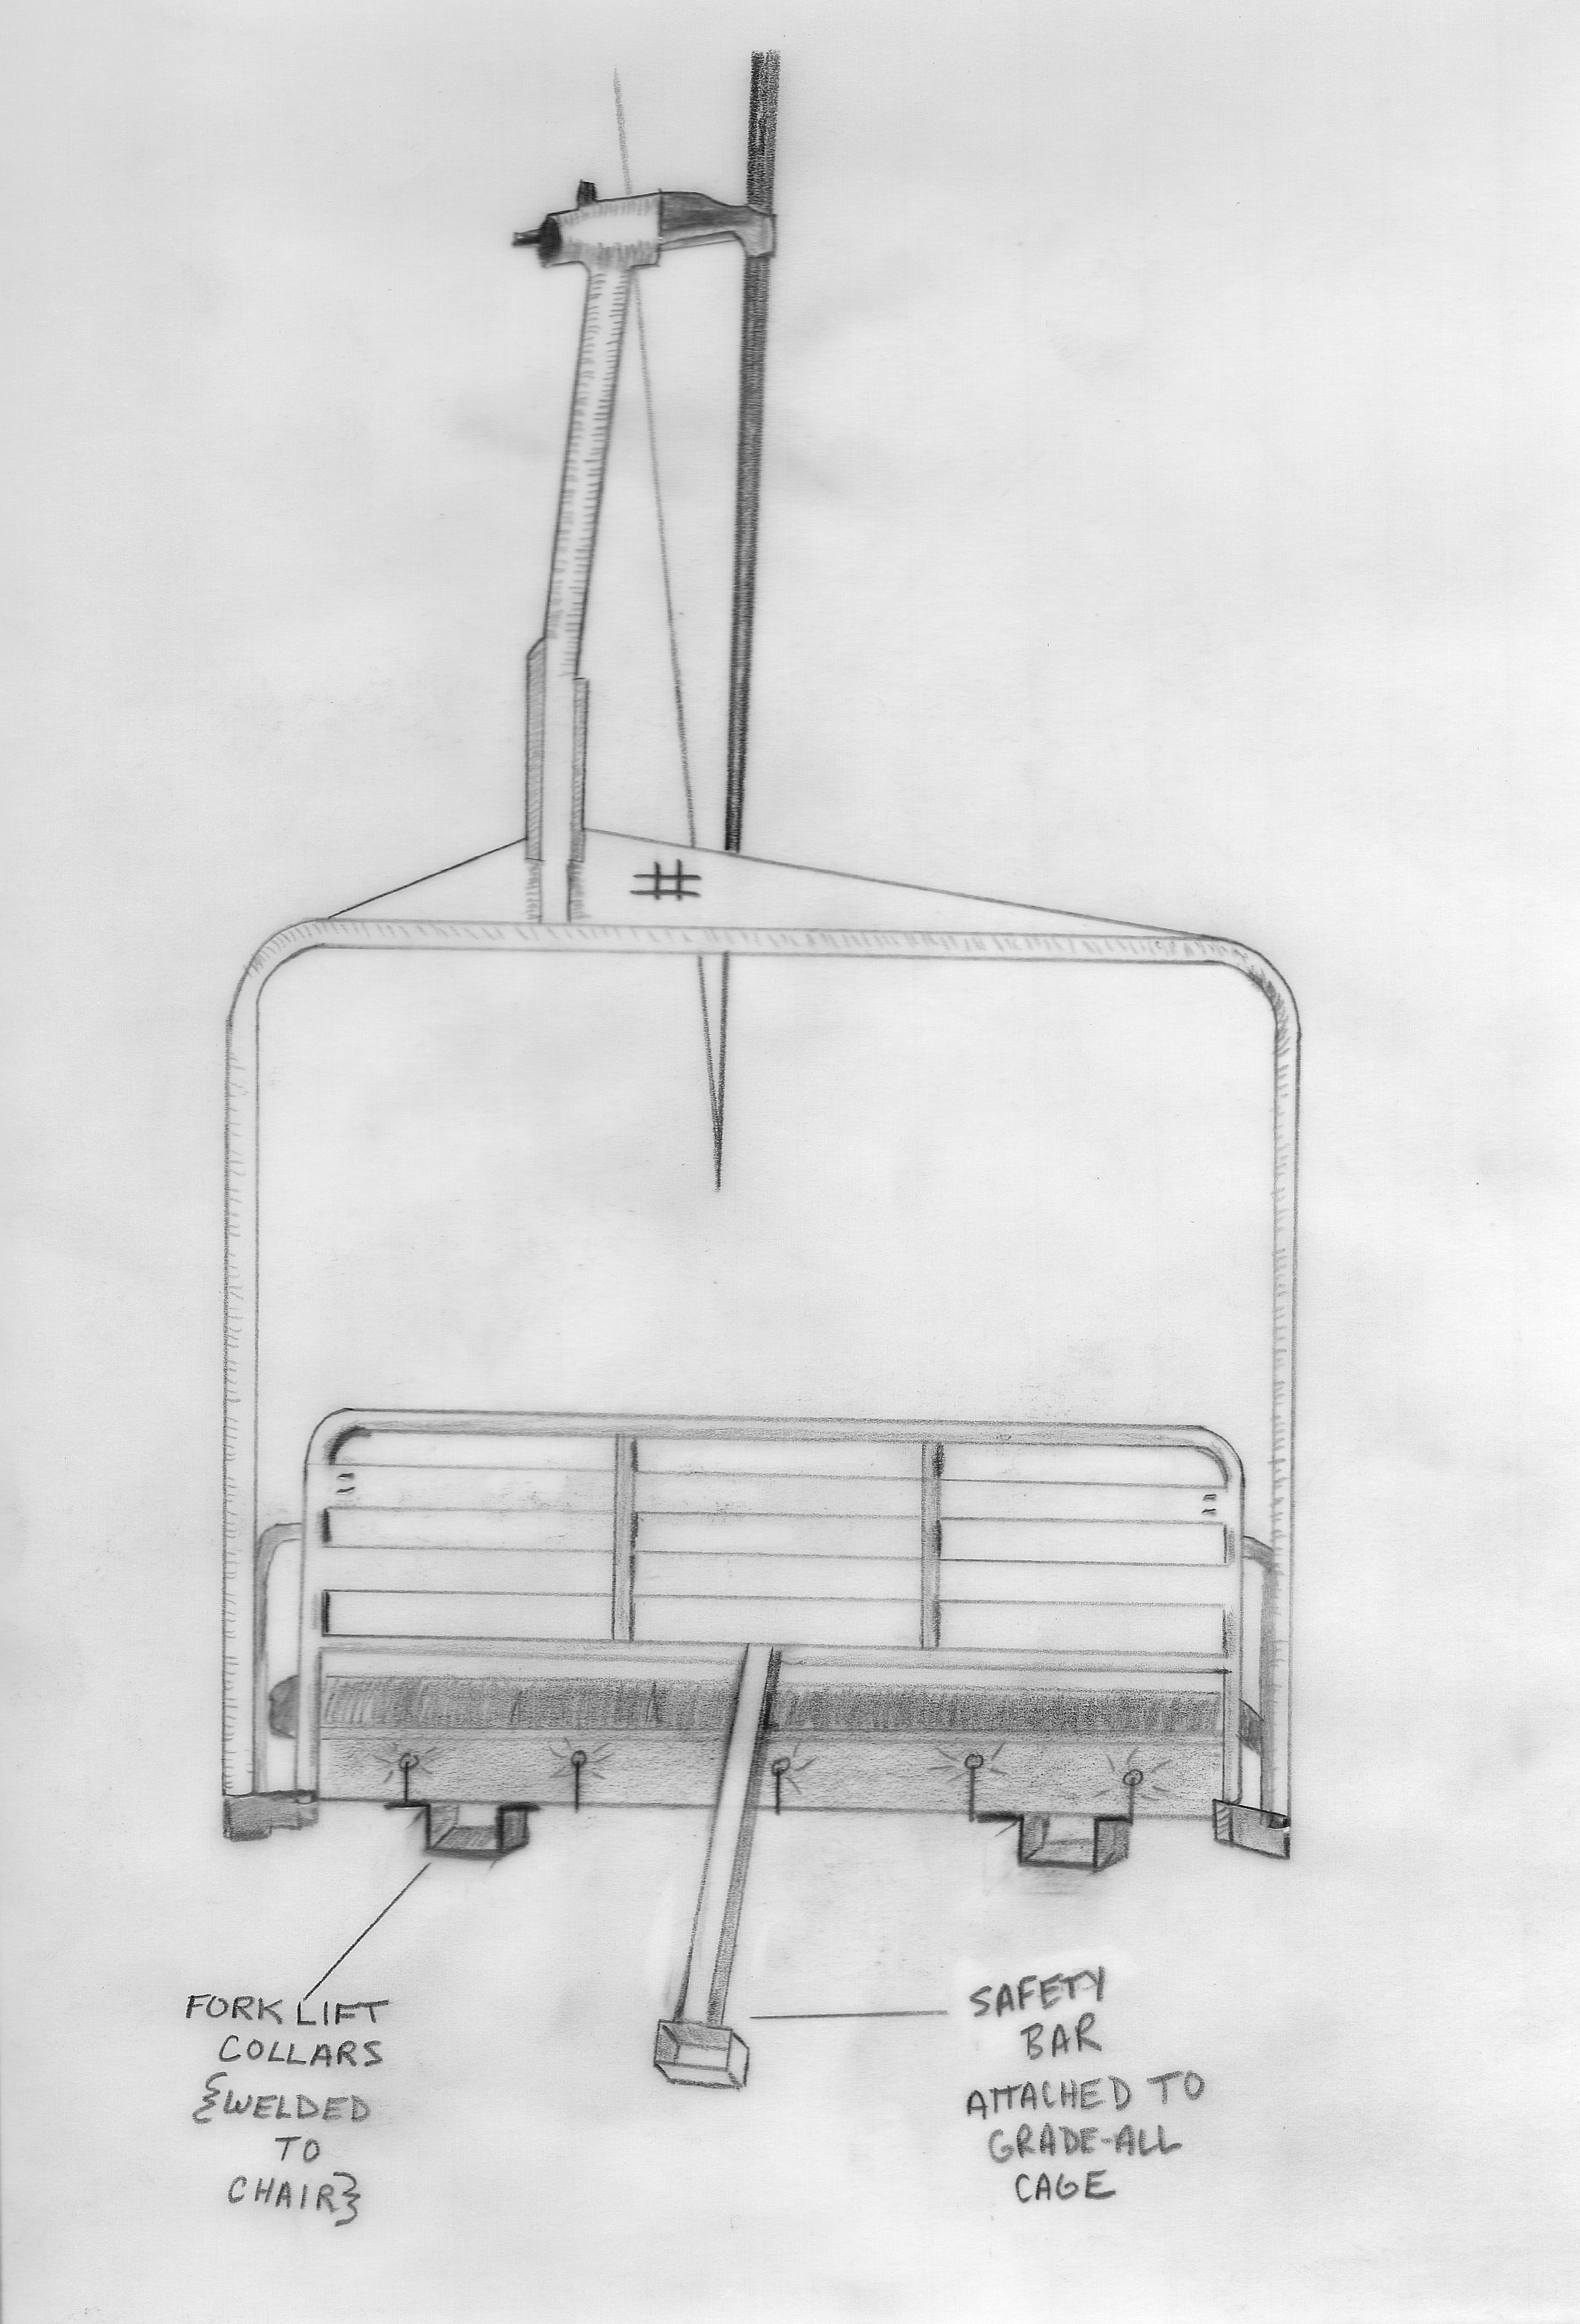 SFX Fork Lift attachment, Design by B. McBrien